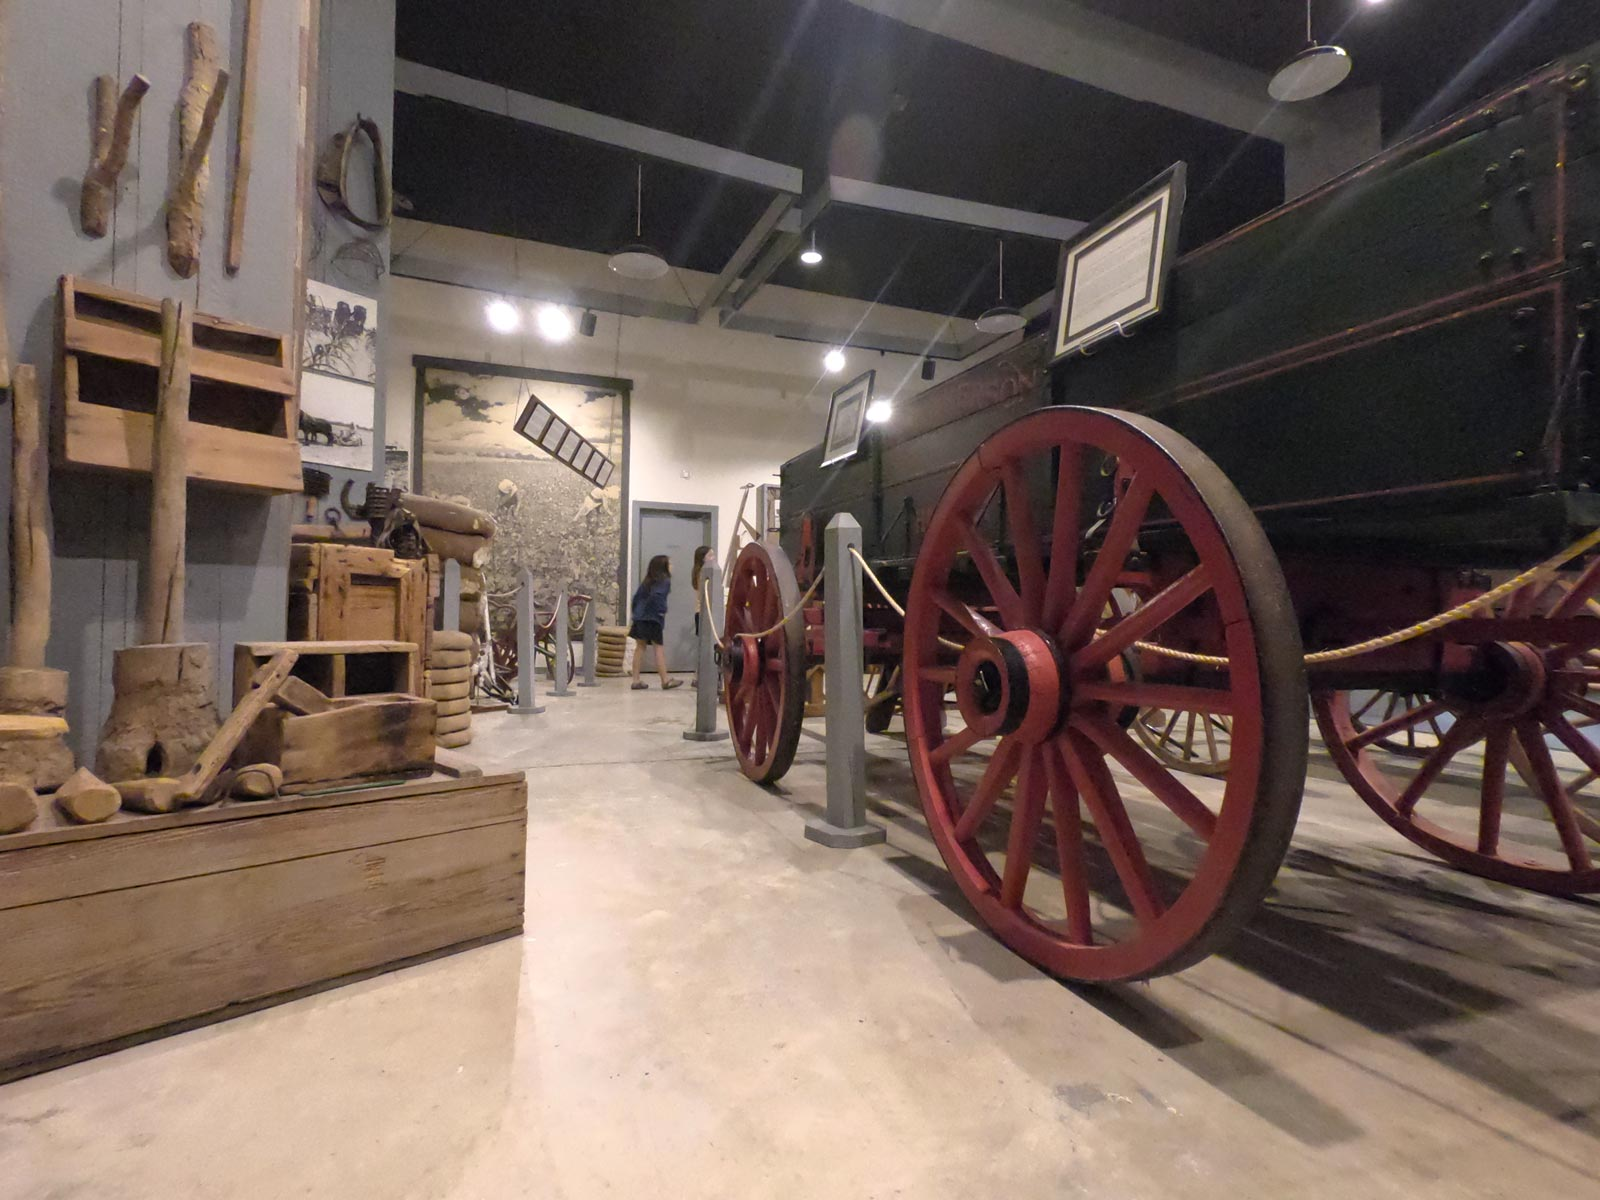 Visit the indoor exhibit of tools and wagons for tobacco farming at  the Tobacco Farm Life Museum, Kenly, North Carolina